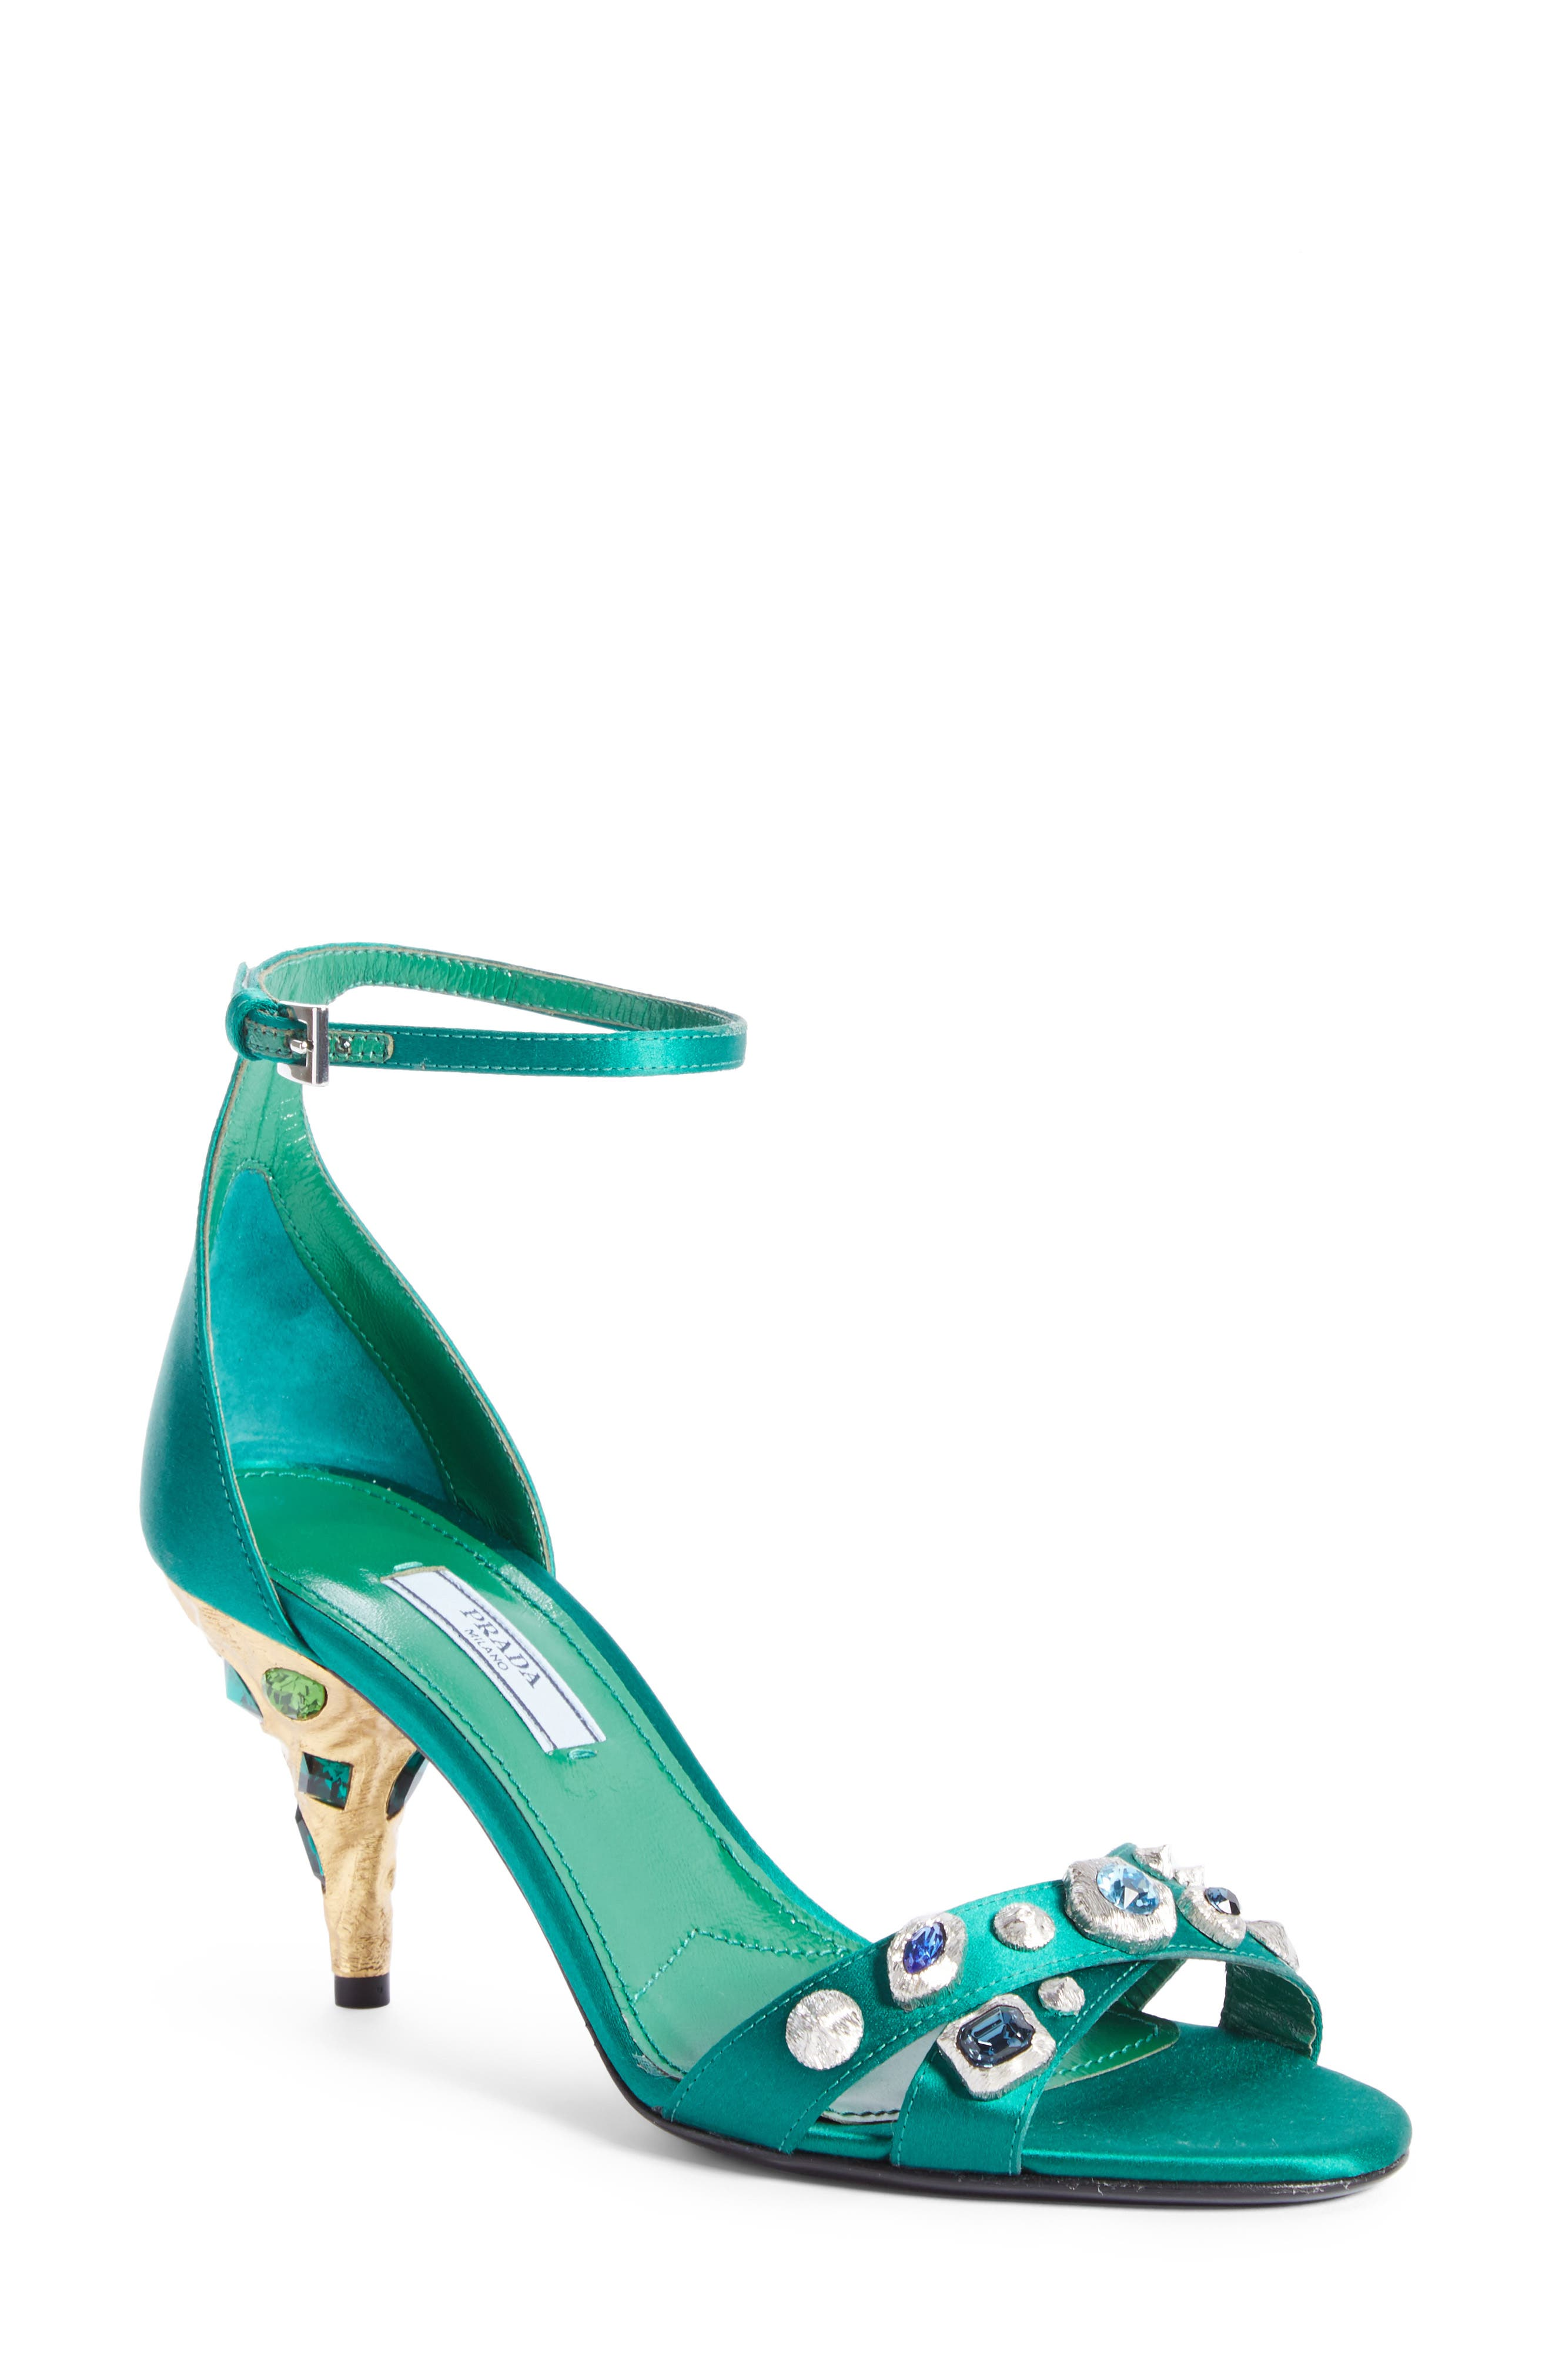 Jewel Ankle Strap Sandal,                         Main,                         color, 301